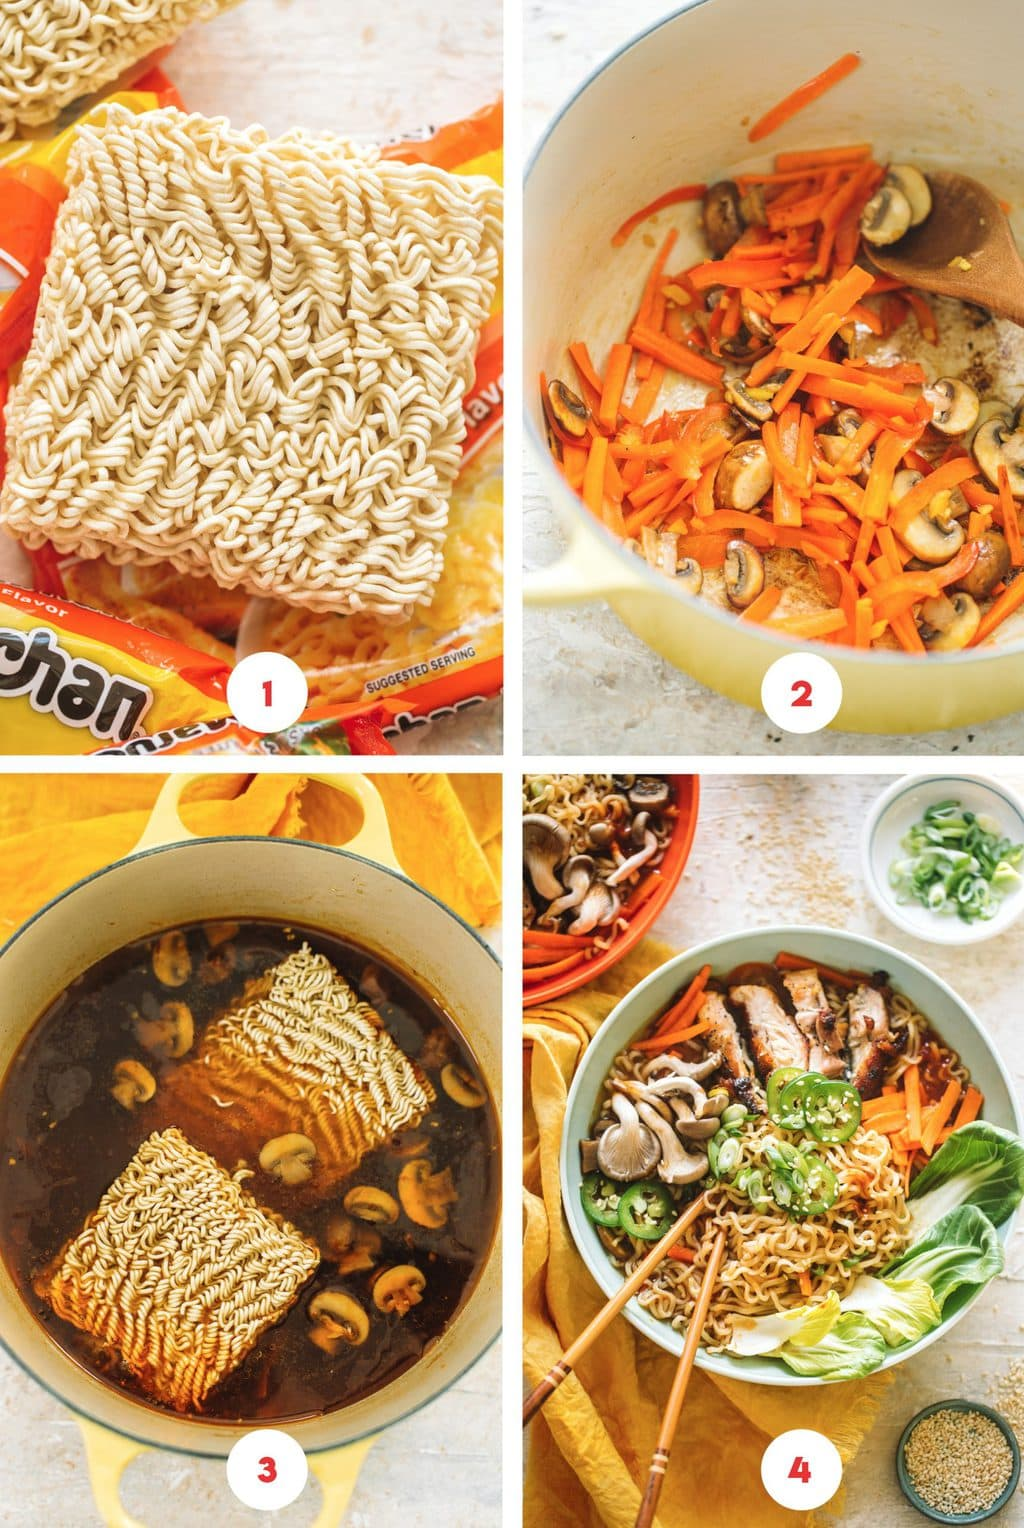 Step by step process on how to make spicy chicken ramen soup.